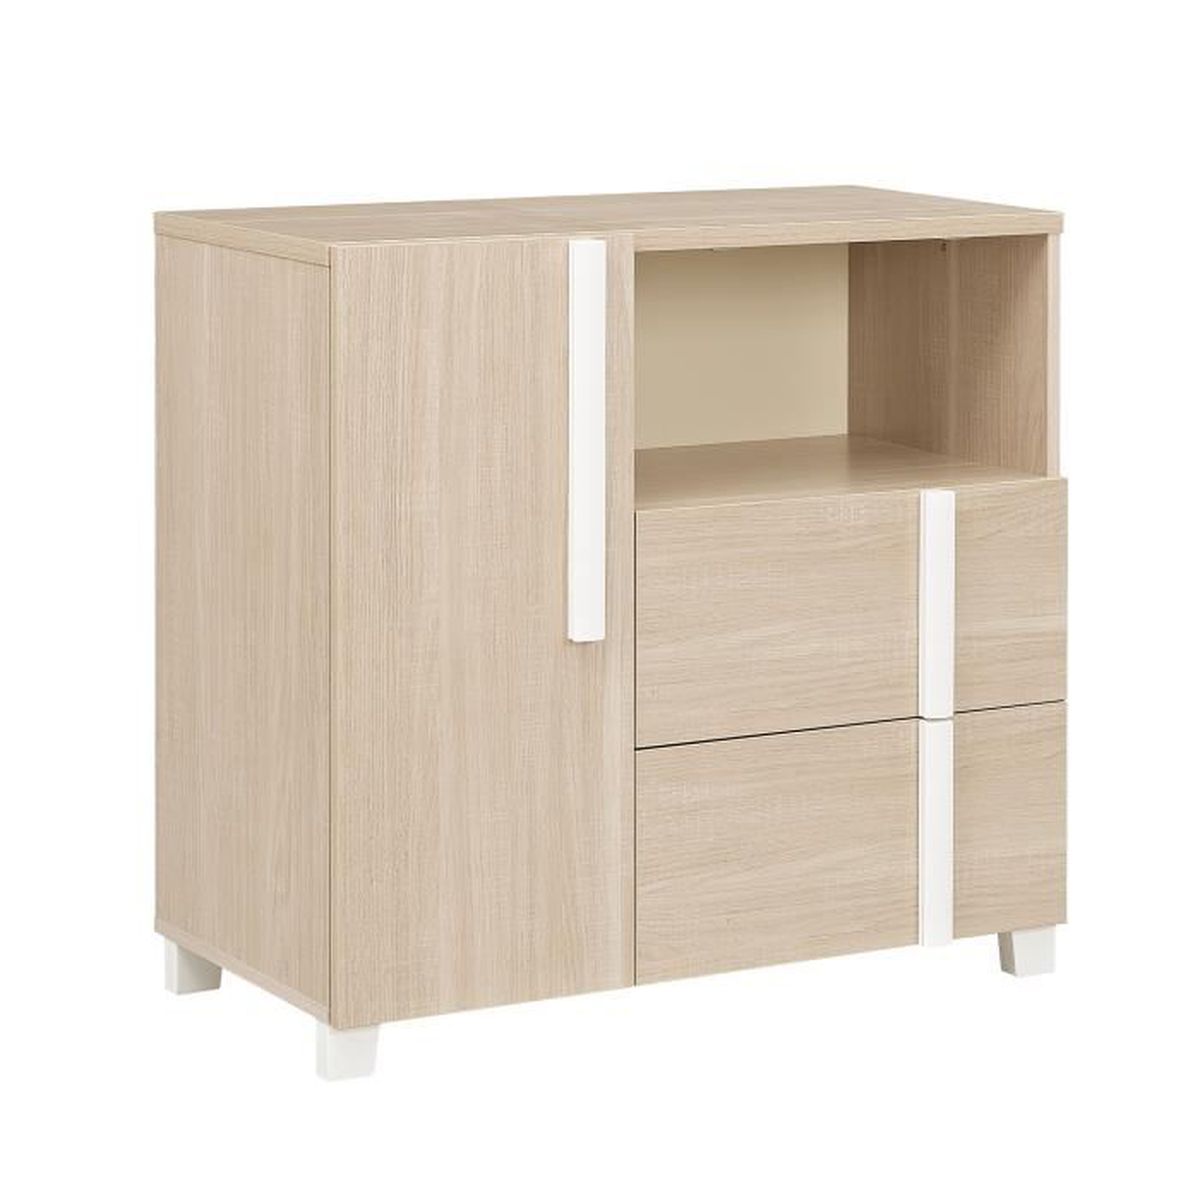 commode en bois avec 1 porte et 2 tiroirs l99 cm h93 cm alpa achat vente commode de chambre. Black Bedroom Furniture Sets. Home Design Ideas